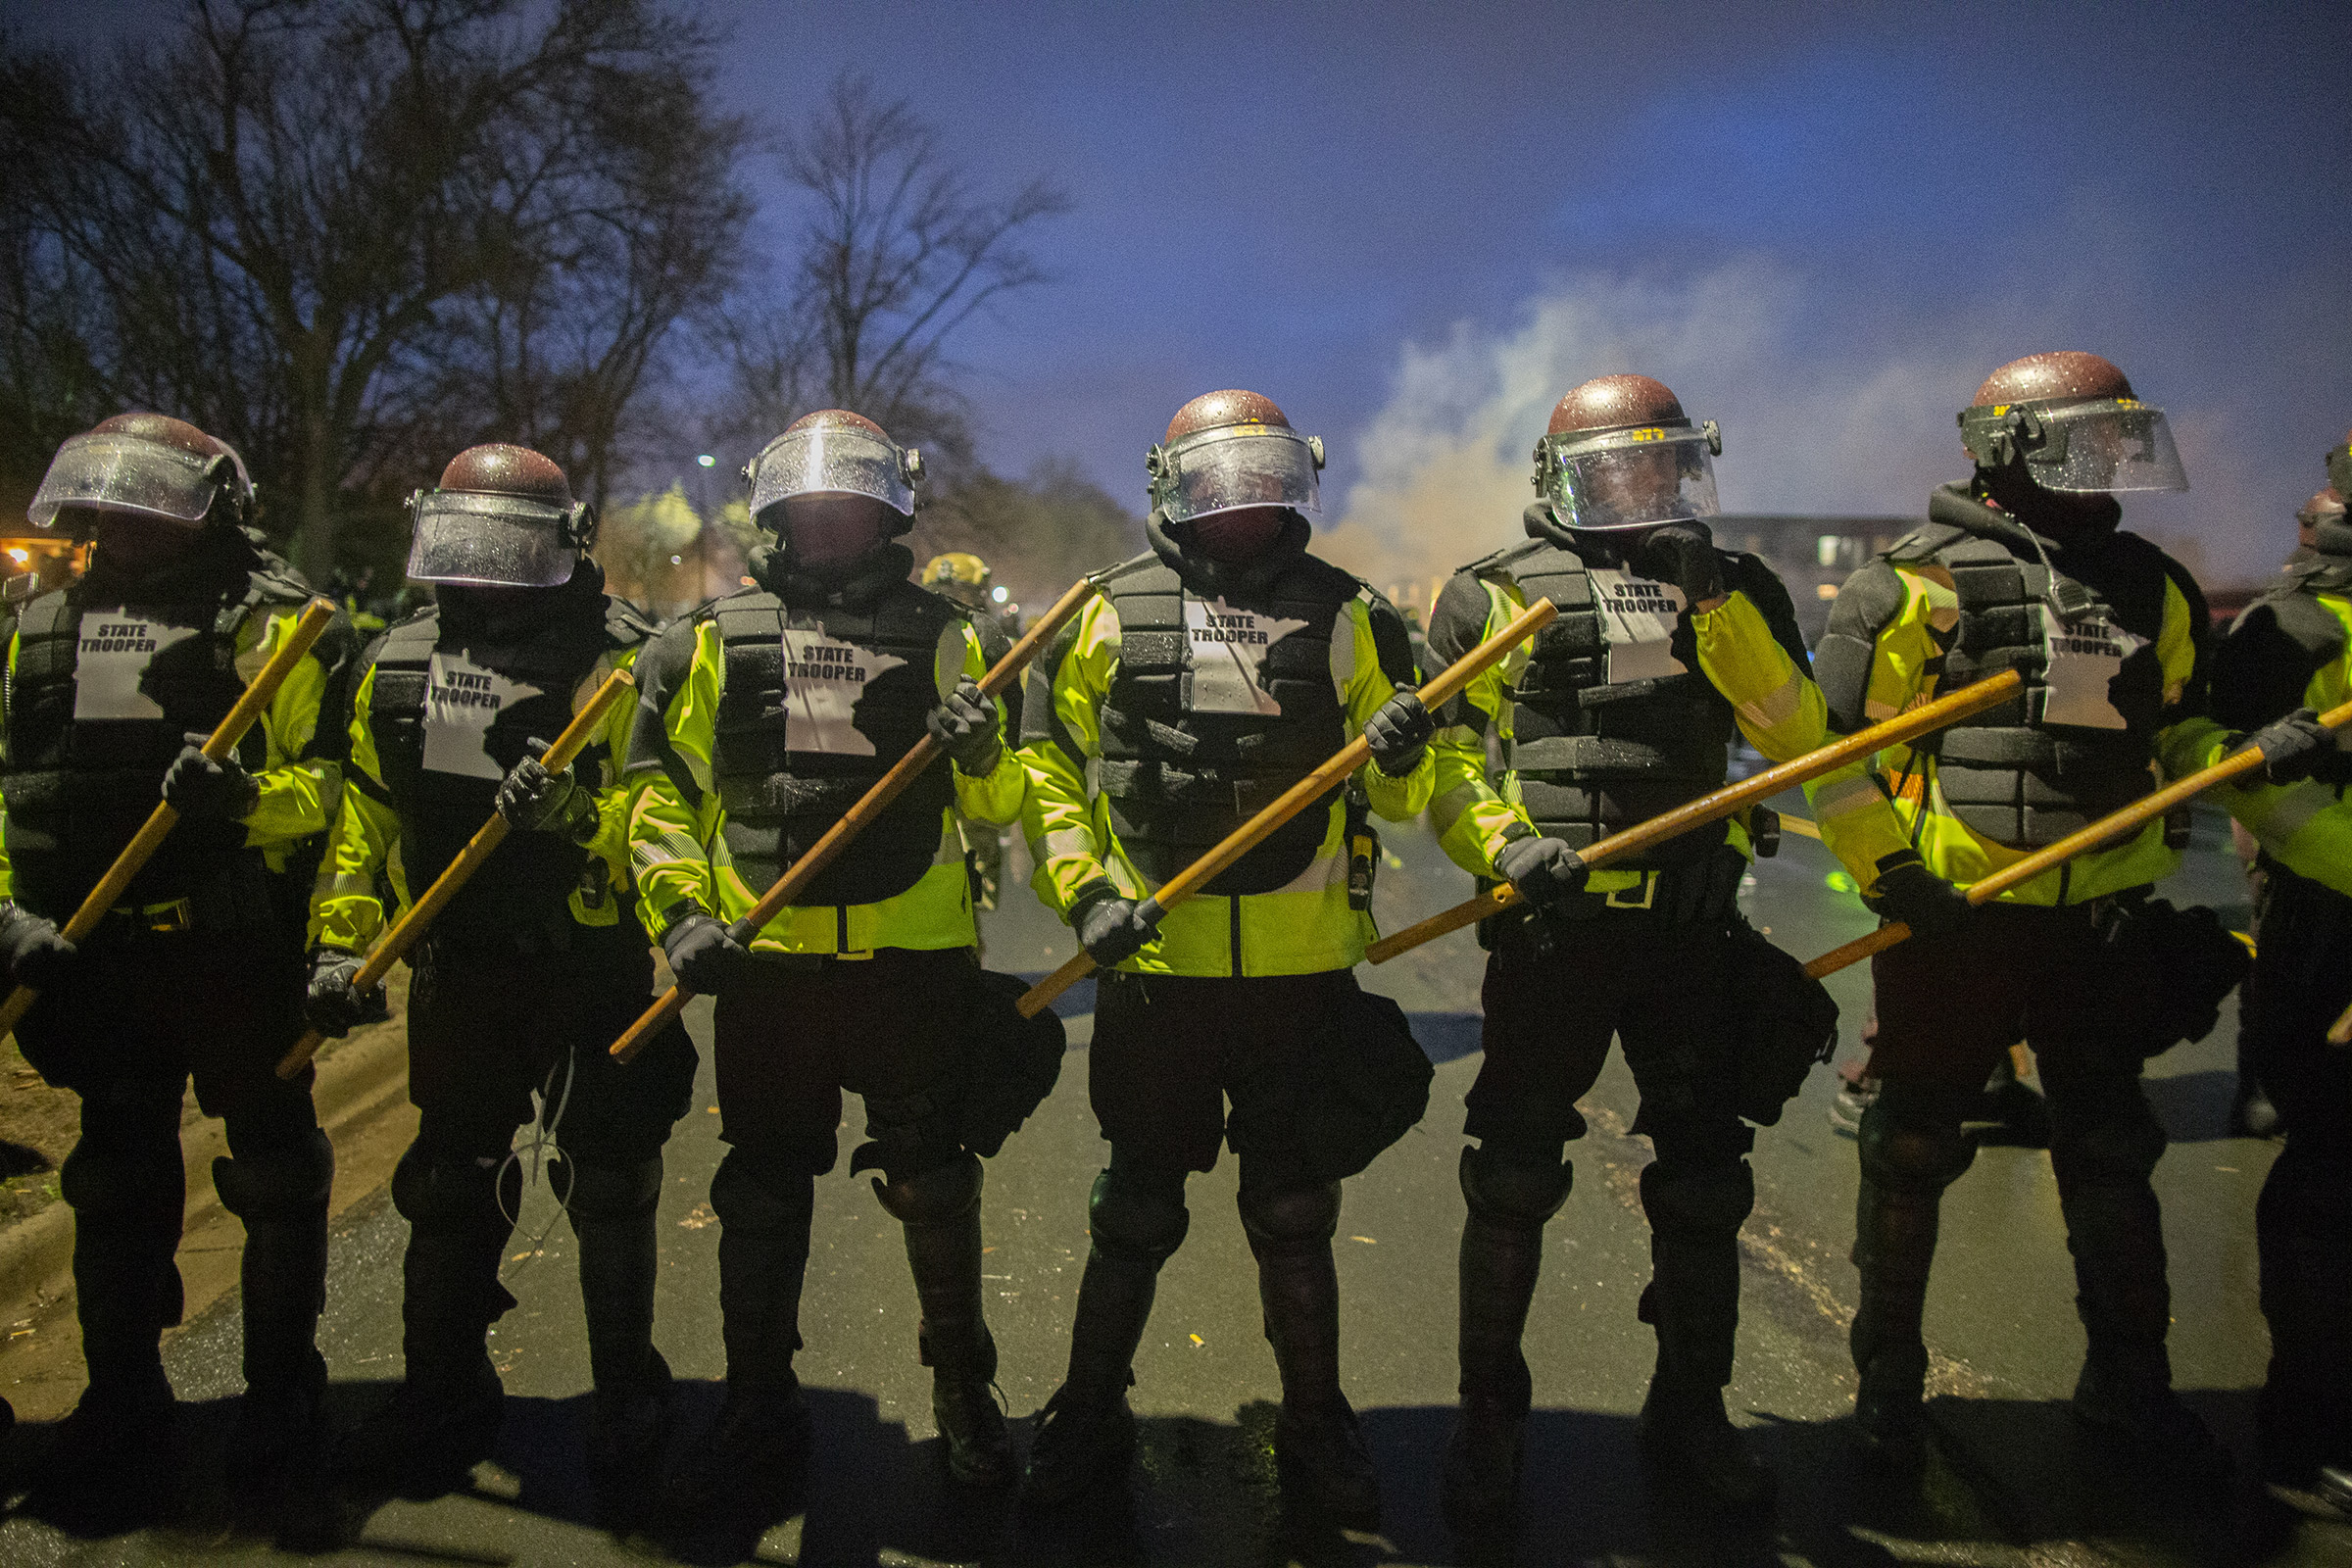 Tear gas rises from behind a line of Minnesota State Troopers as they block the road from anyone going back towards the Brooklyn Center police station where people protesting the police killing of Daunte Wright in Brooklyn Center, Minnesota, U.S., on April 13, 2021.